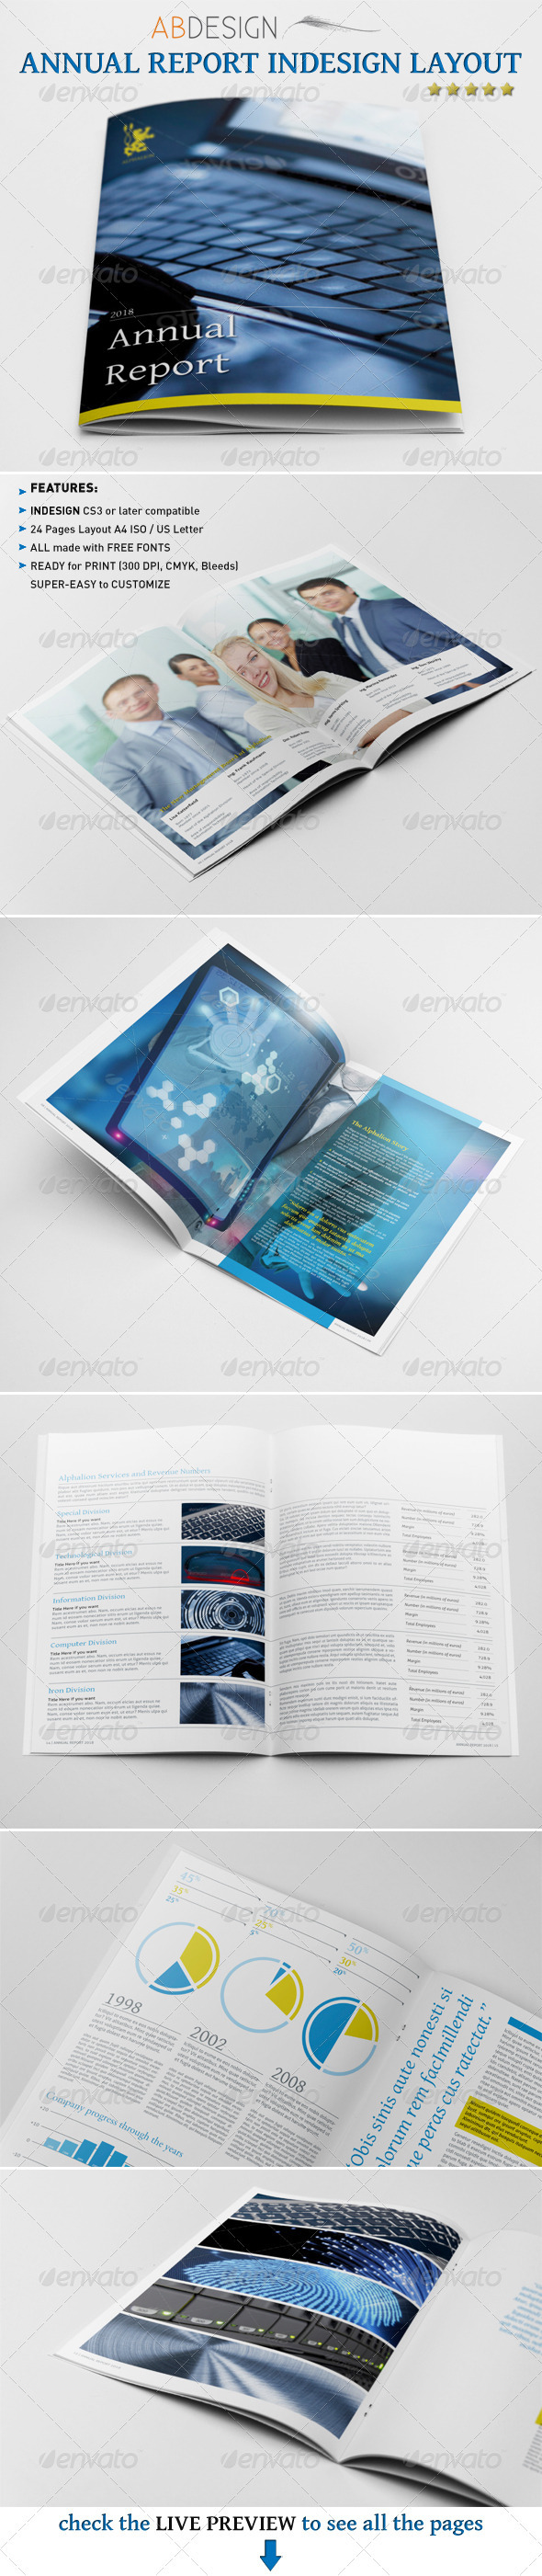 Annual Report Indesign Layout | Annual reports, Indesign templates ...